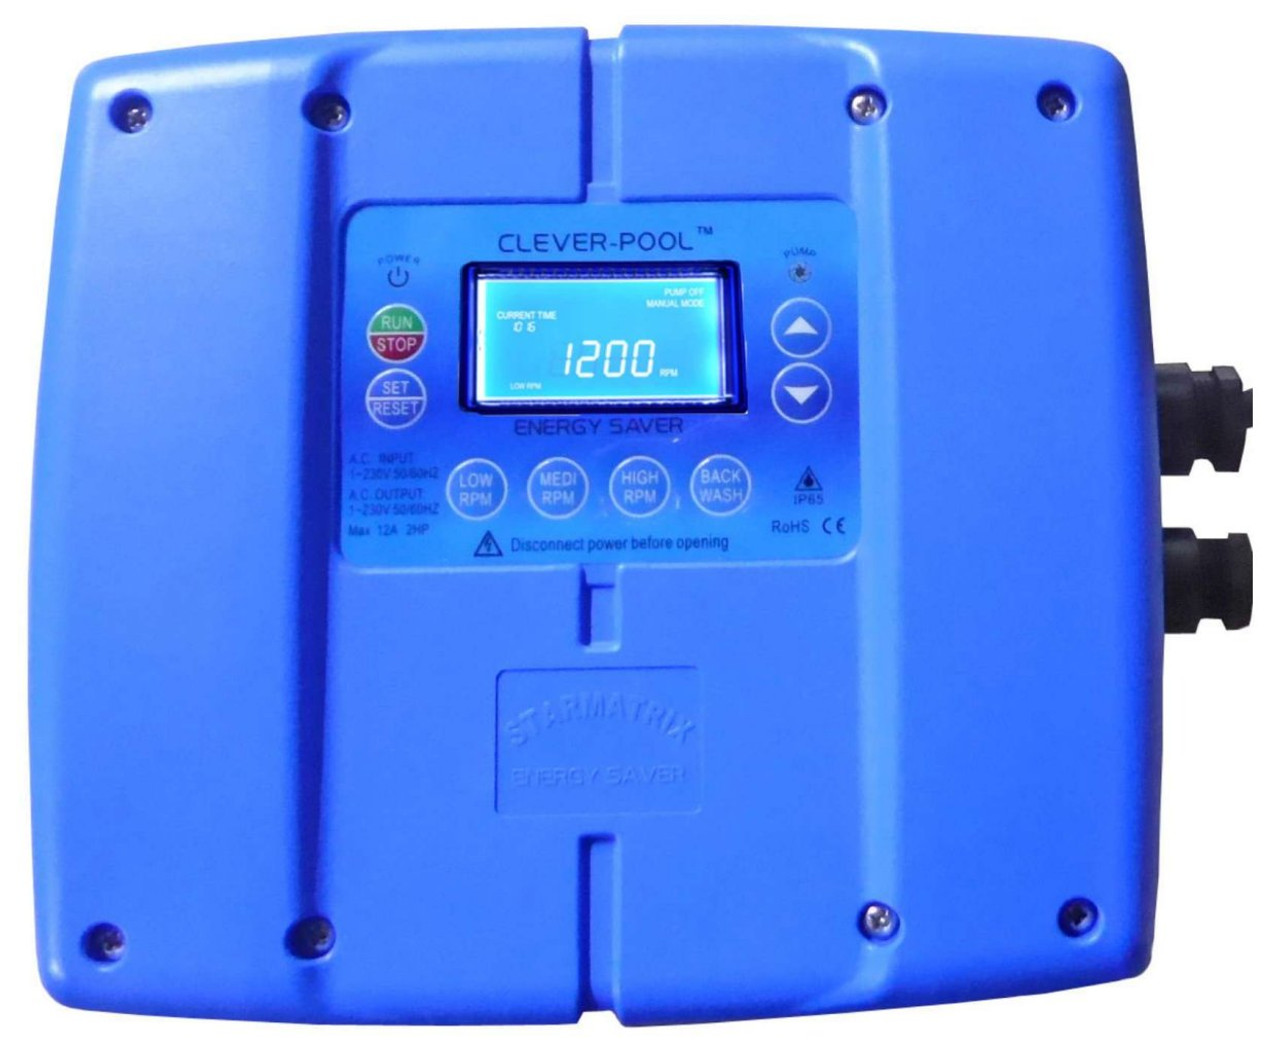 Clever Pool pump inverter for swimming pool pump